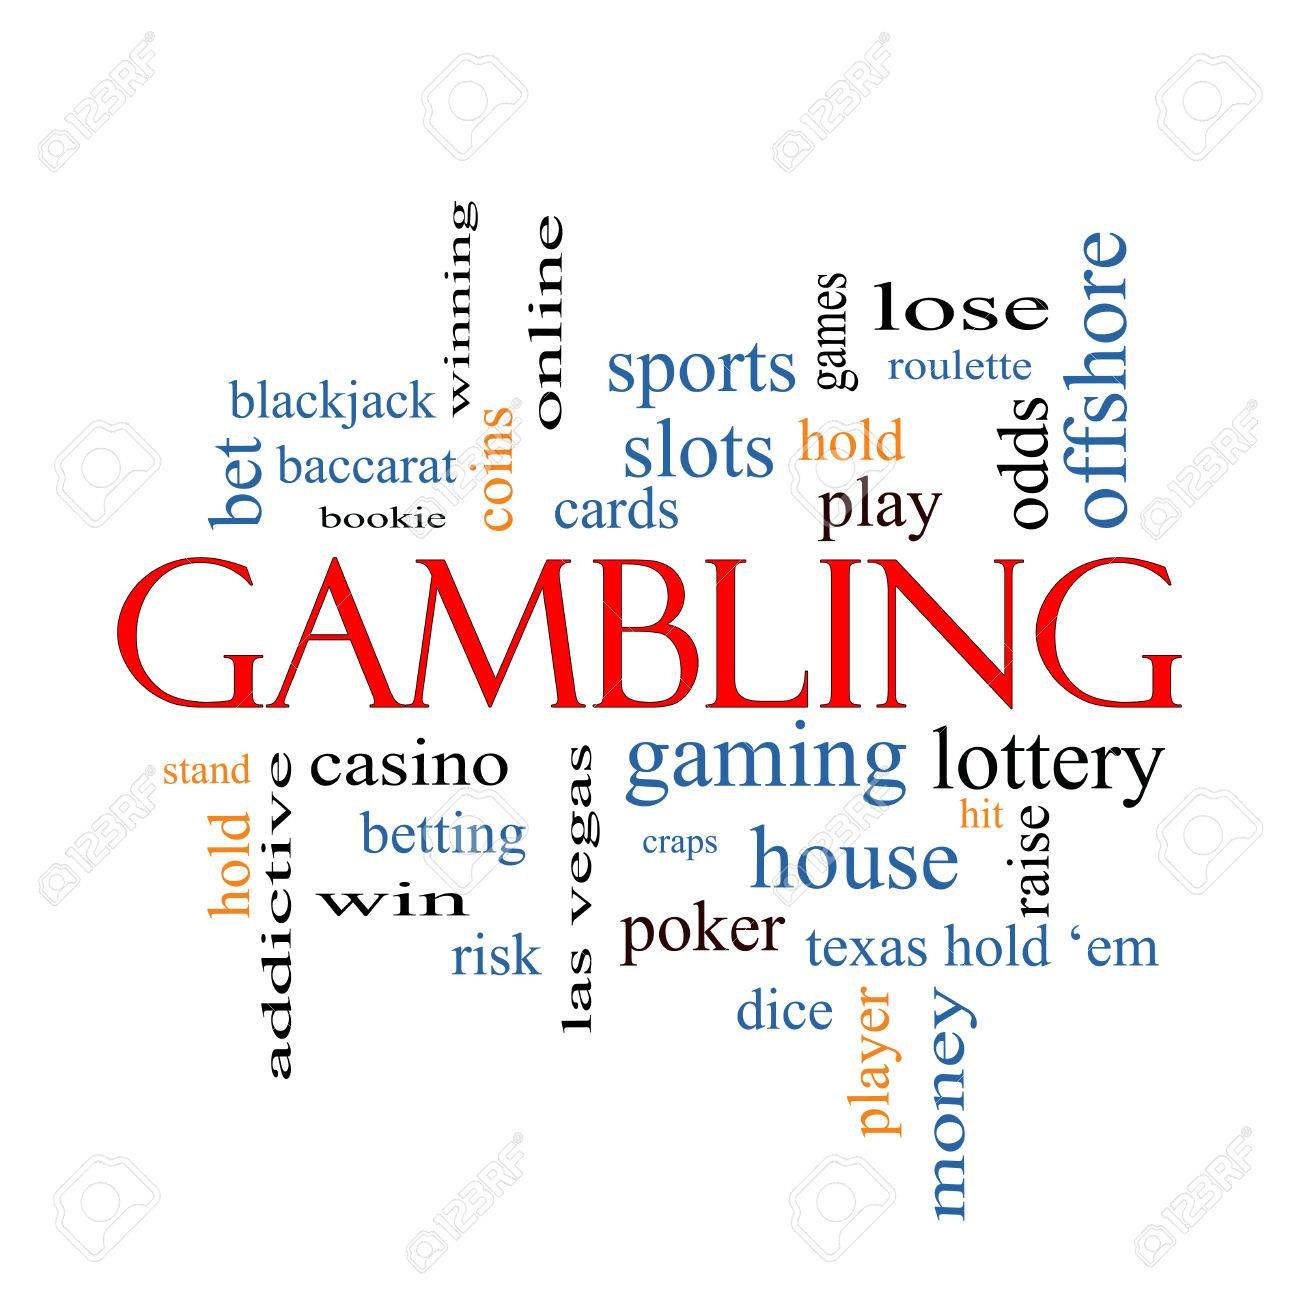 Most common numbers drawn in roulette